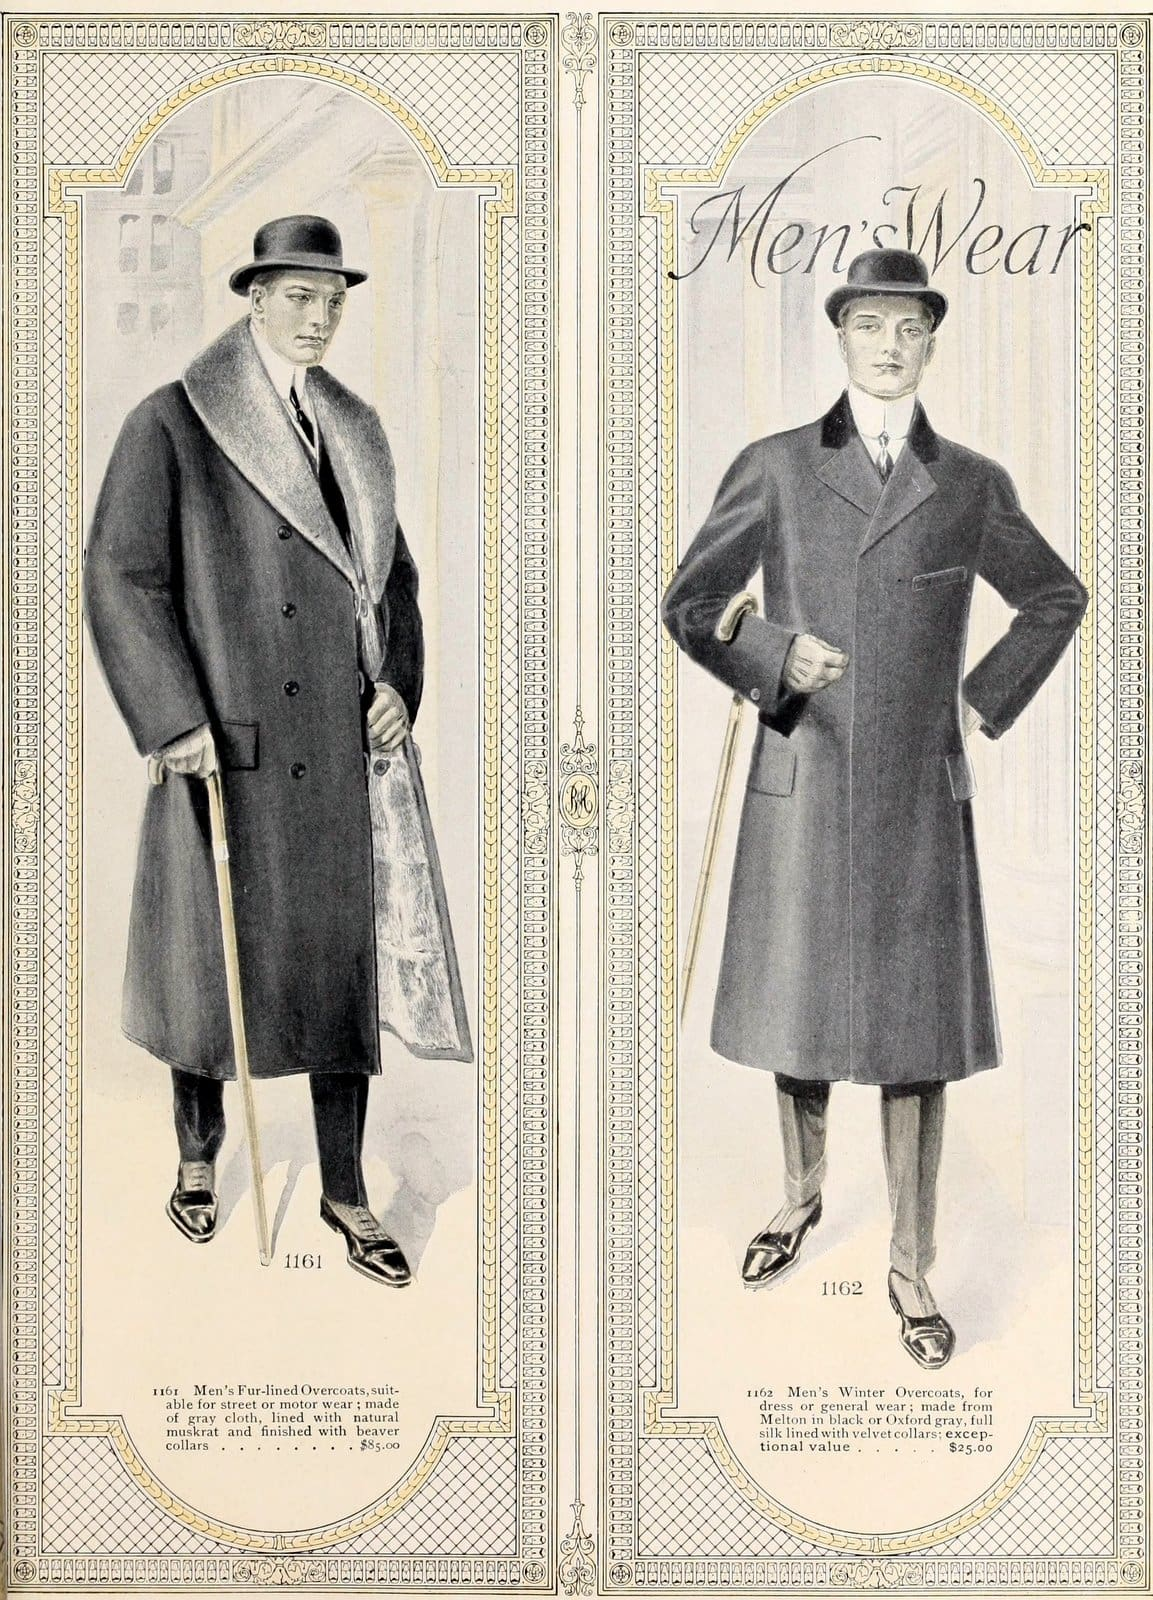 Vintage menswear from 1916